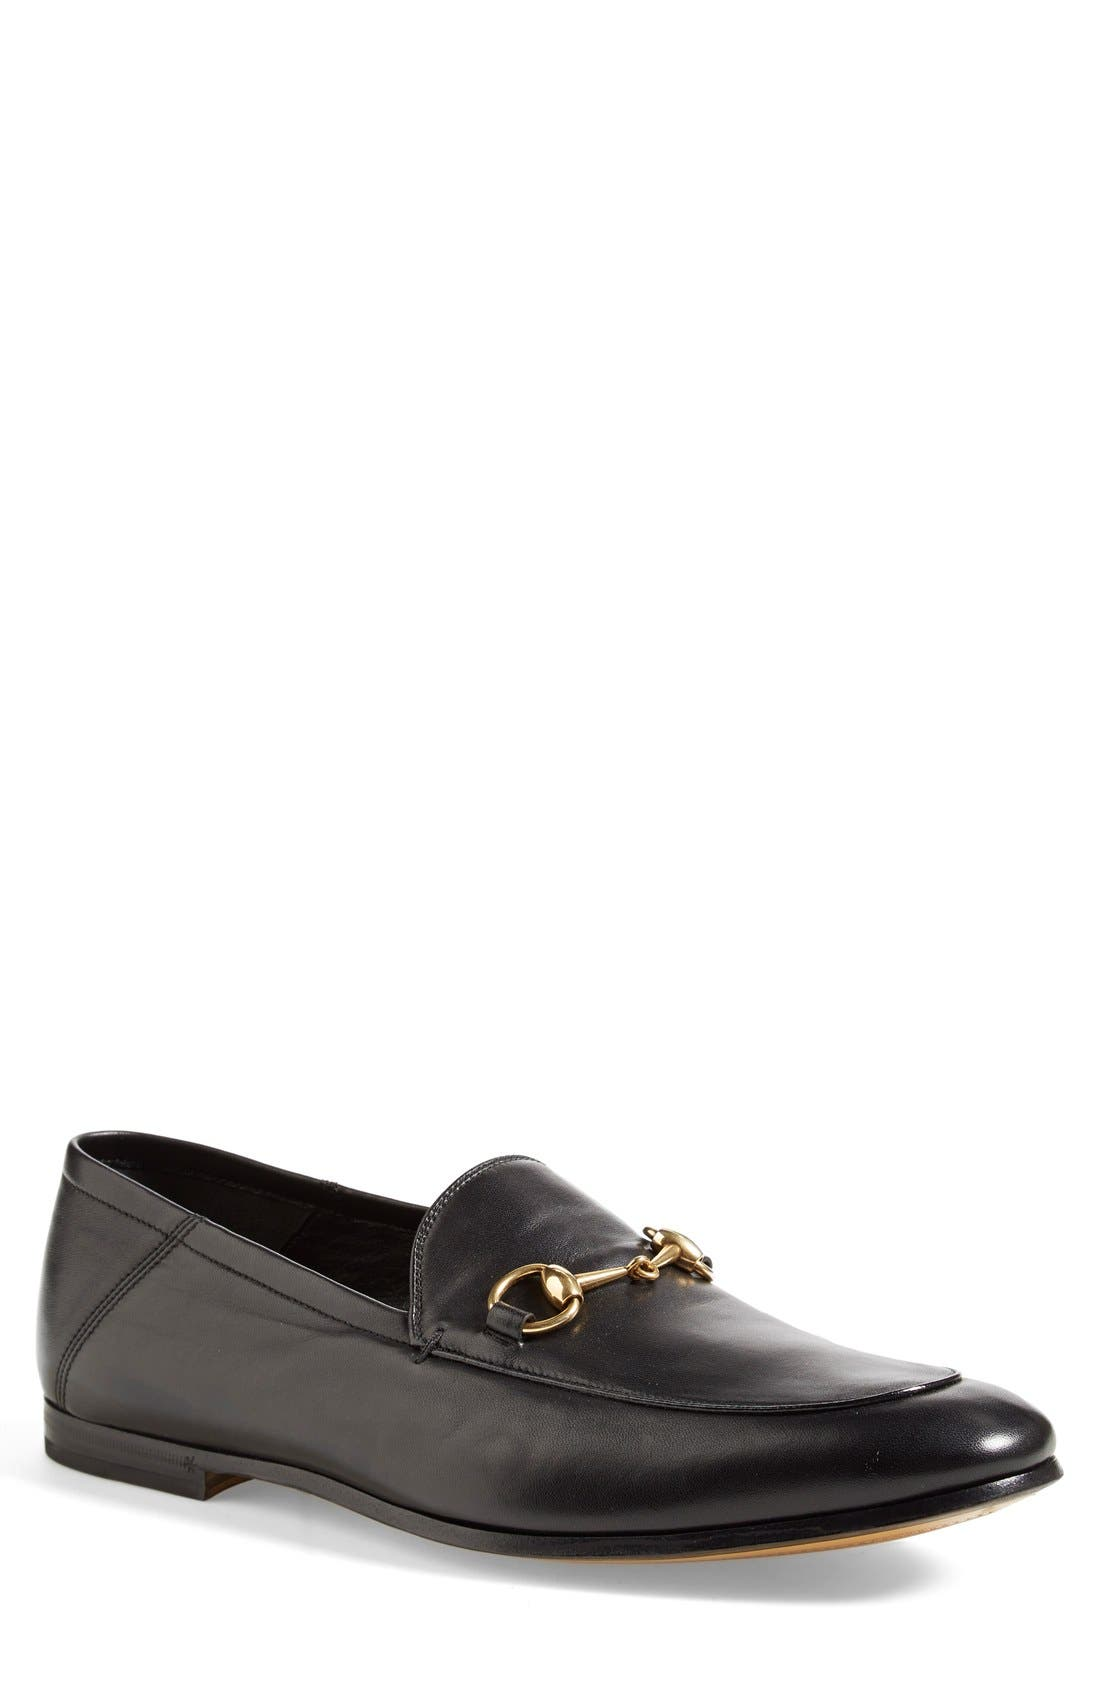 Brixton Leather Loafer,                         Main,                         color, Nero Leather